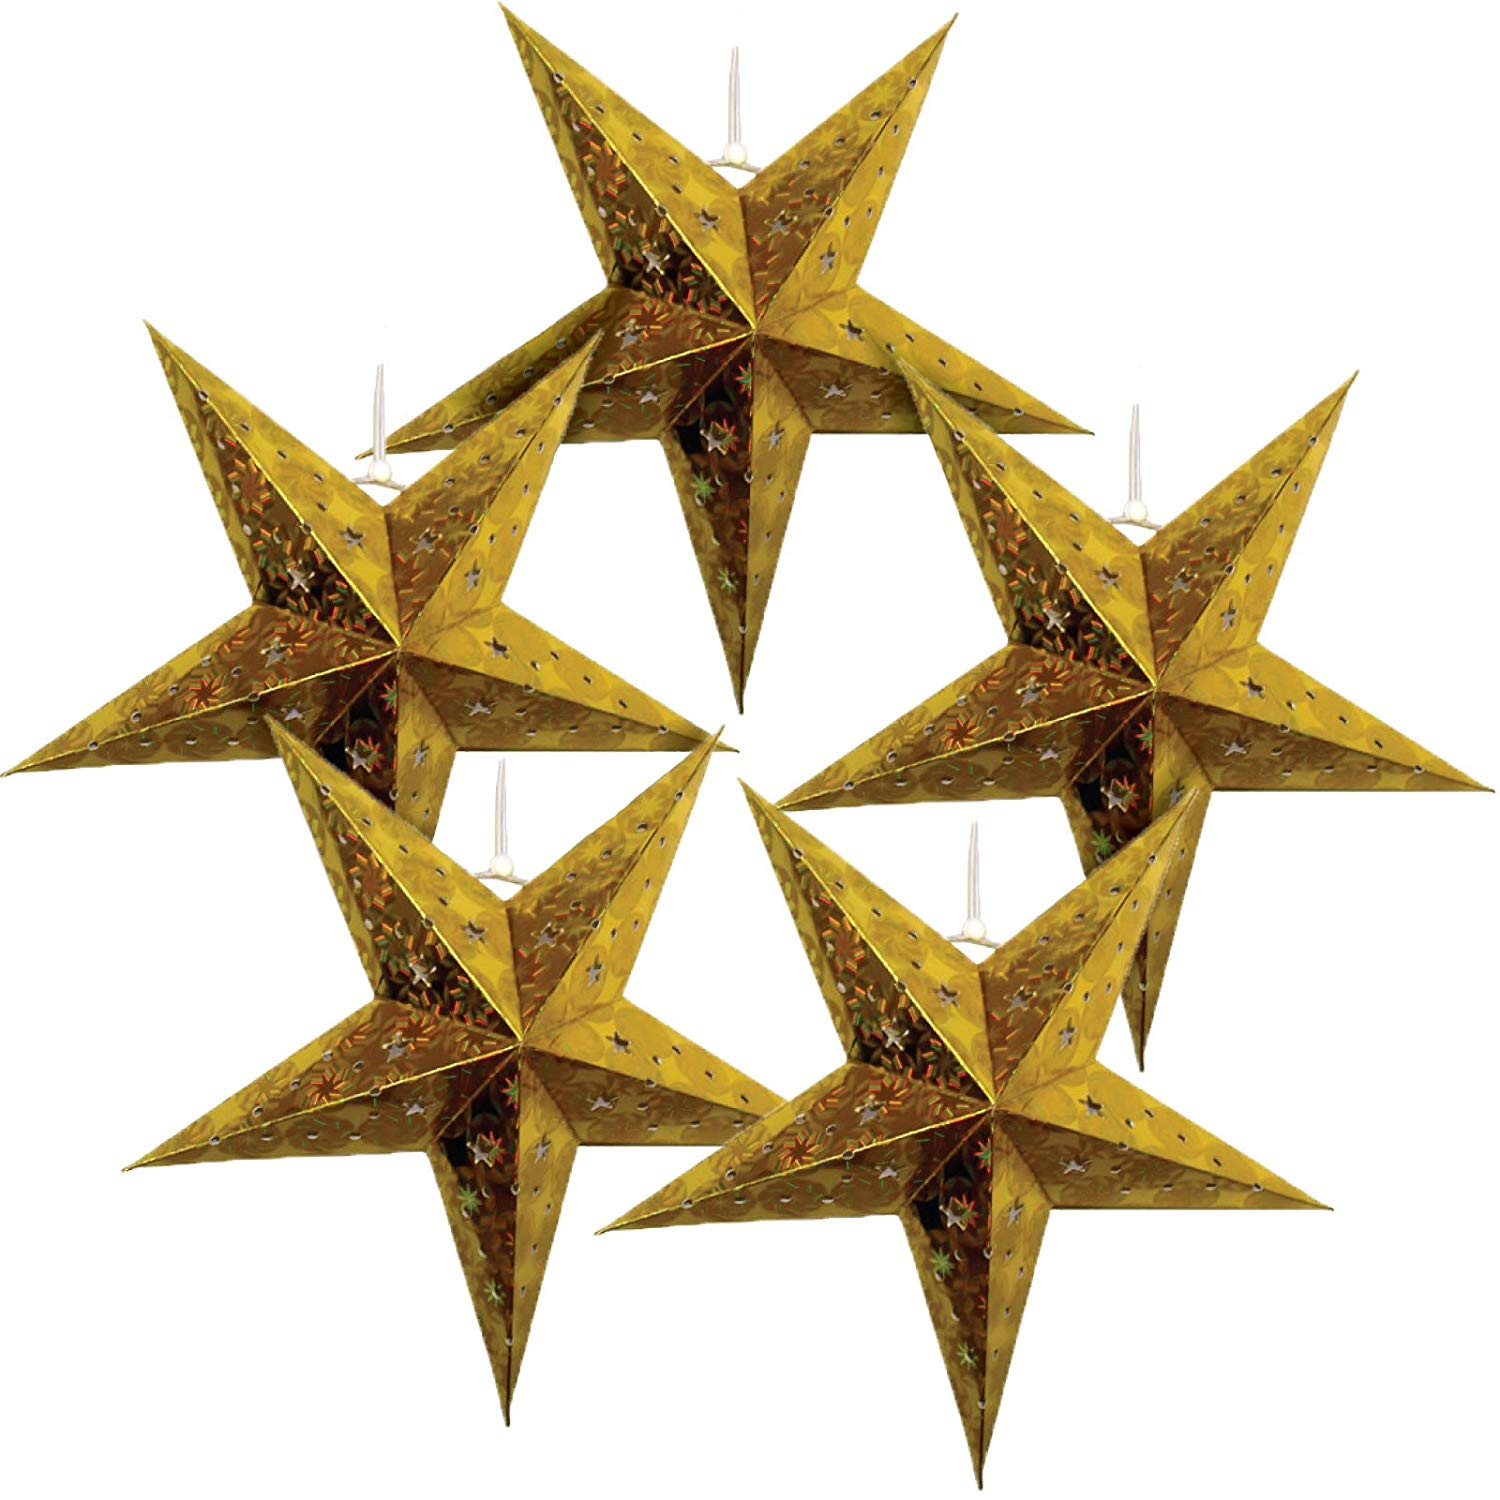 Just Artifacts - Star Shaped Paper Lantern/Lamp Hanging Decoration - (Set of 5, 11inch, Gold)